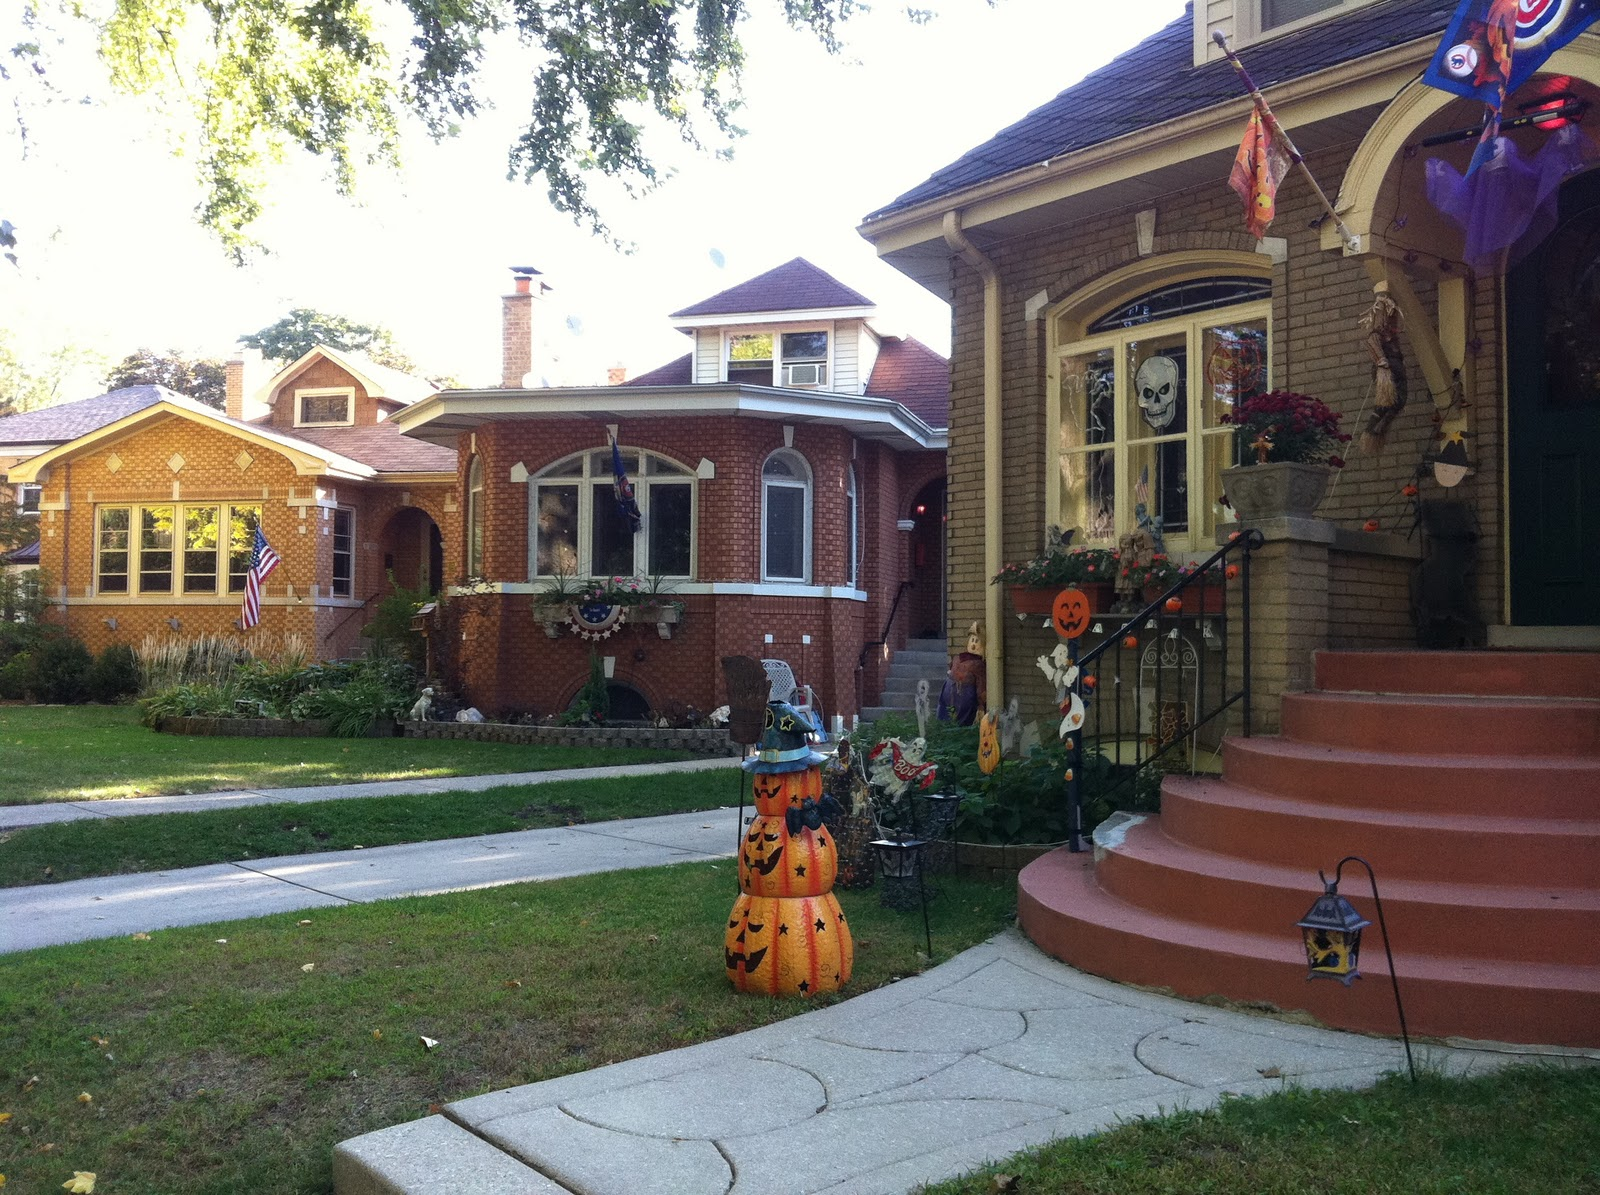 Chicago Bungalow row